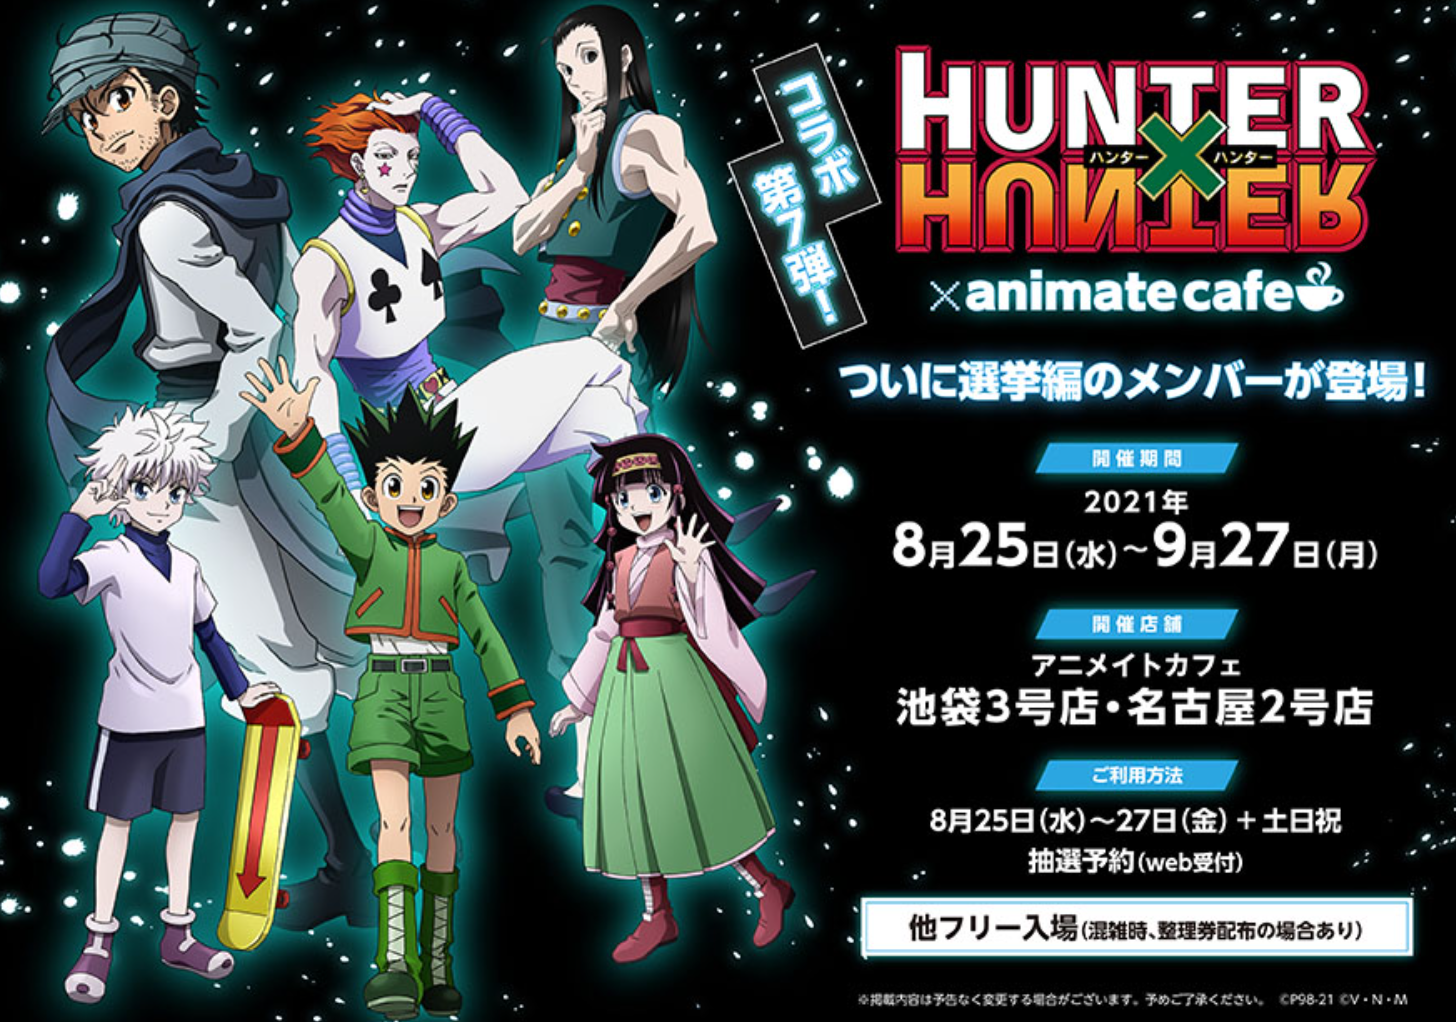 Featured image for August 2021 Anime and Otome Game Collaborations and Pop-up Store Events